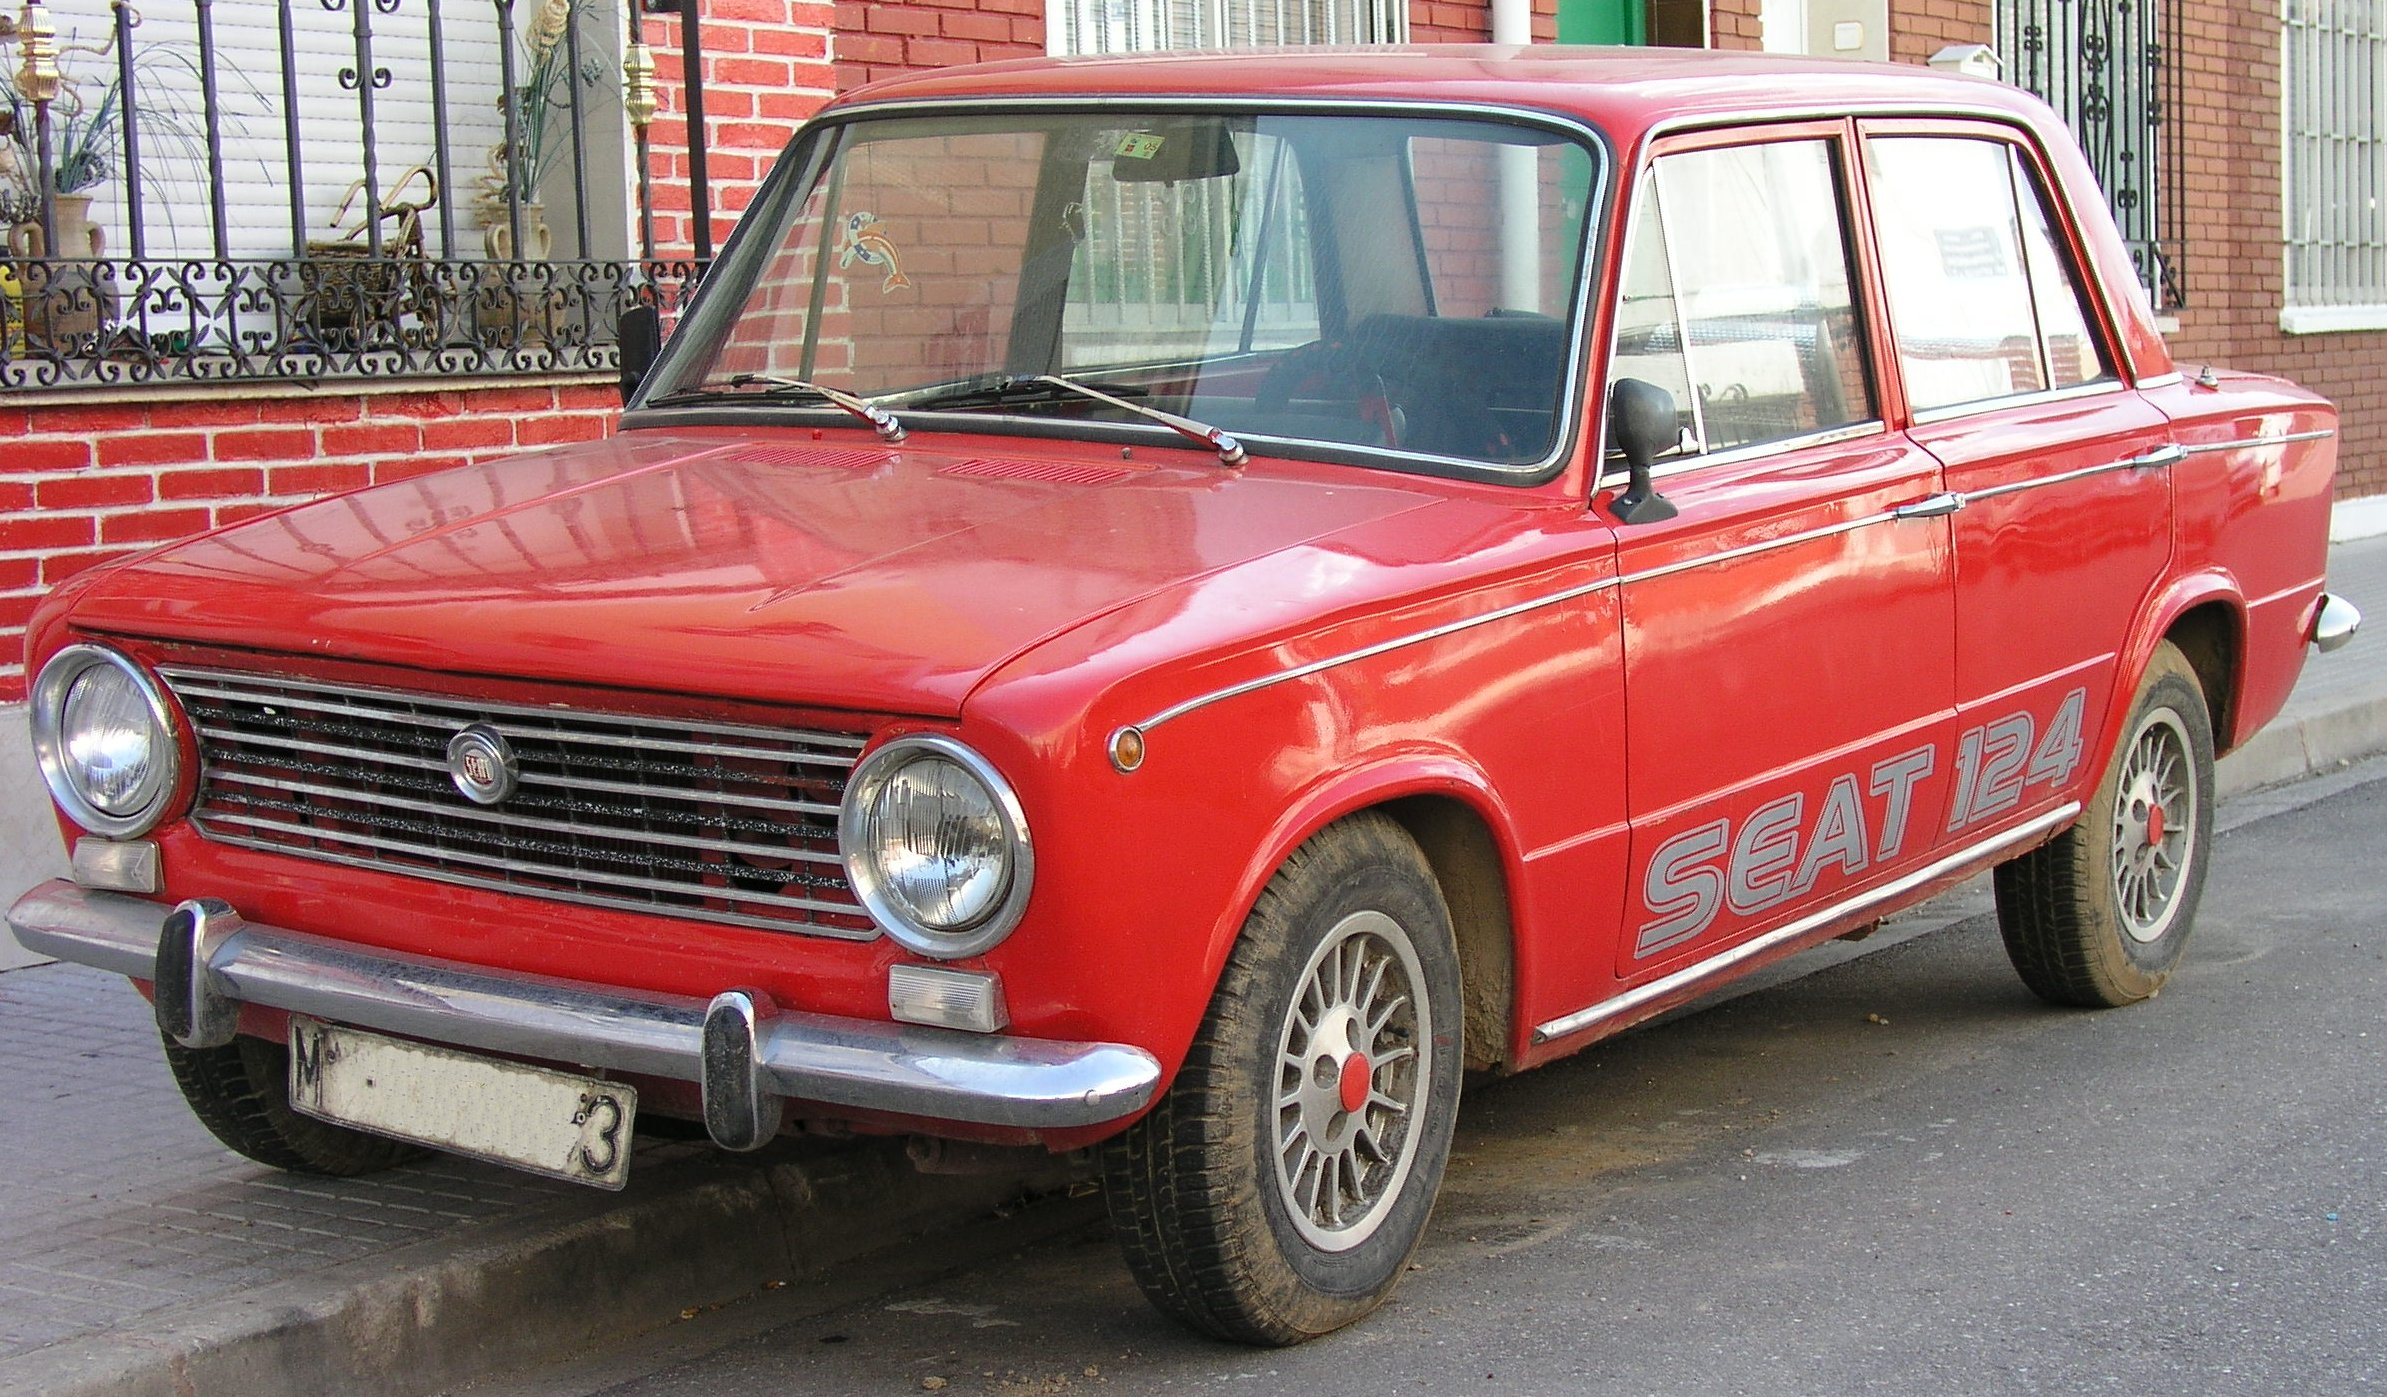 Seat 124 Special